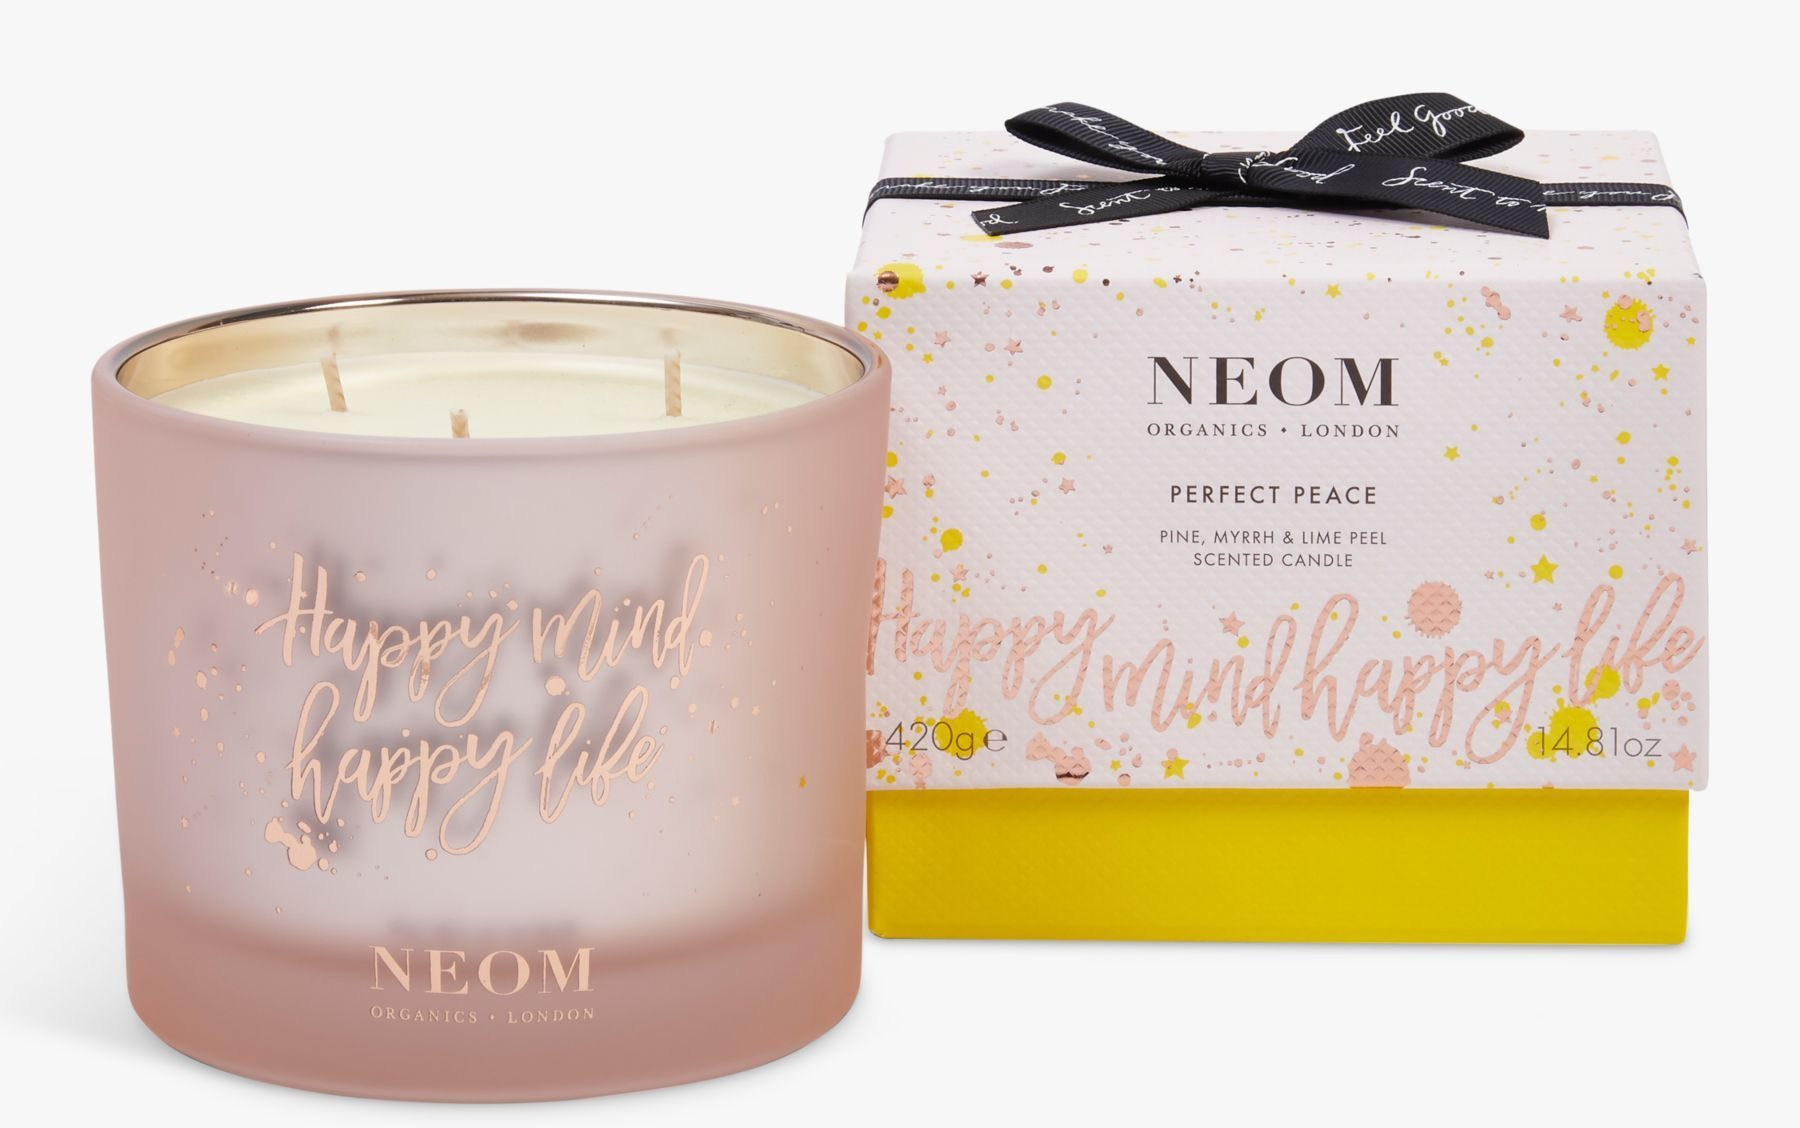 My Celebrity Life – Neom Organics Perfect Peace 3 Wick Scented Candle